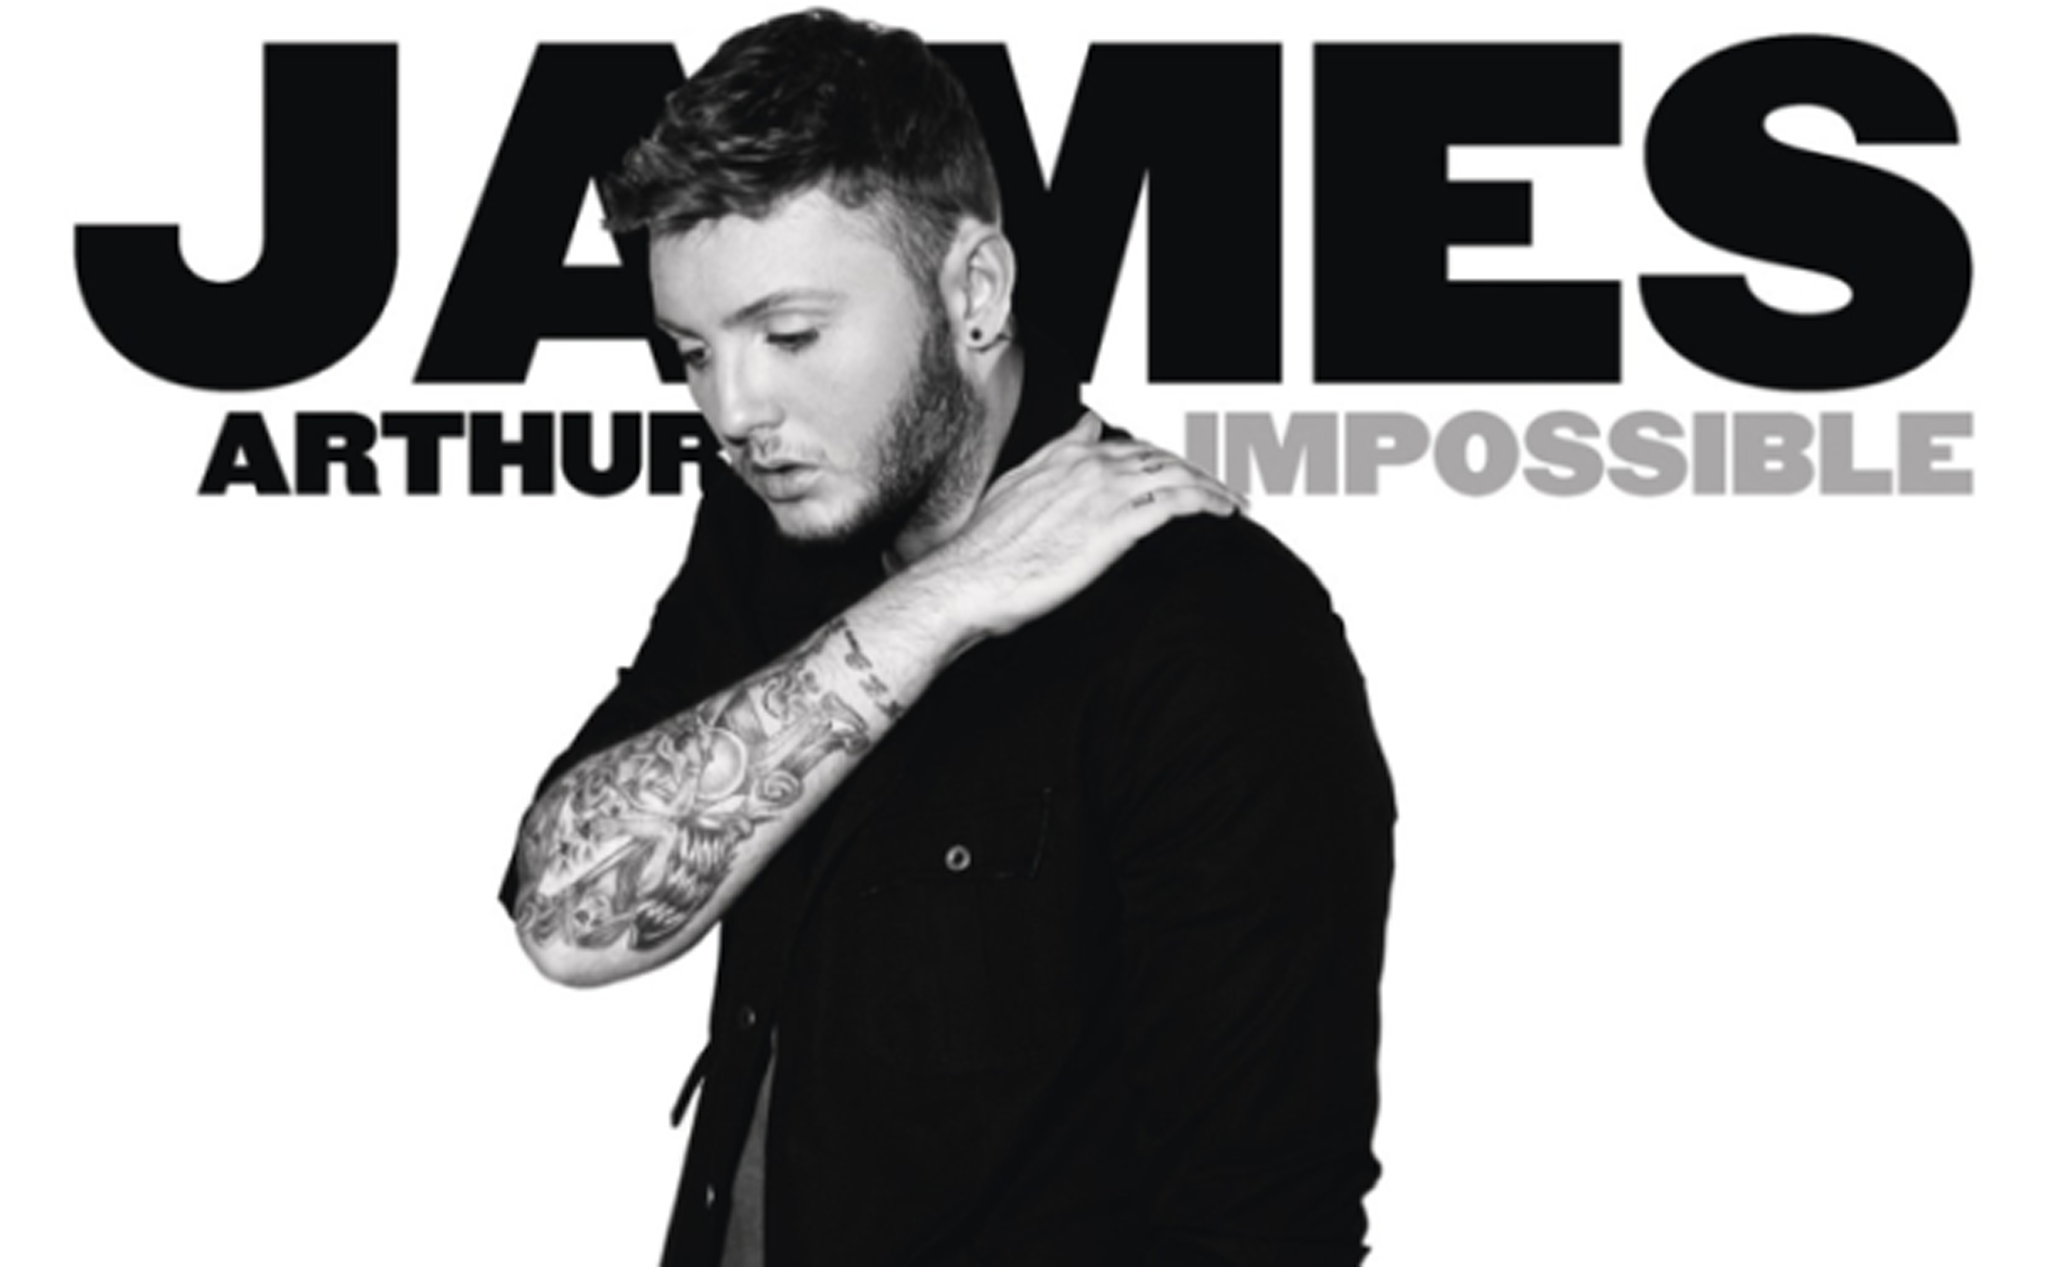 James arthur impossible (mp3 download) youtube.